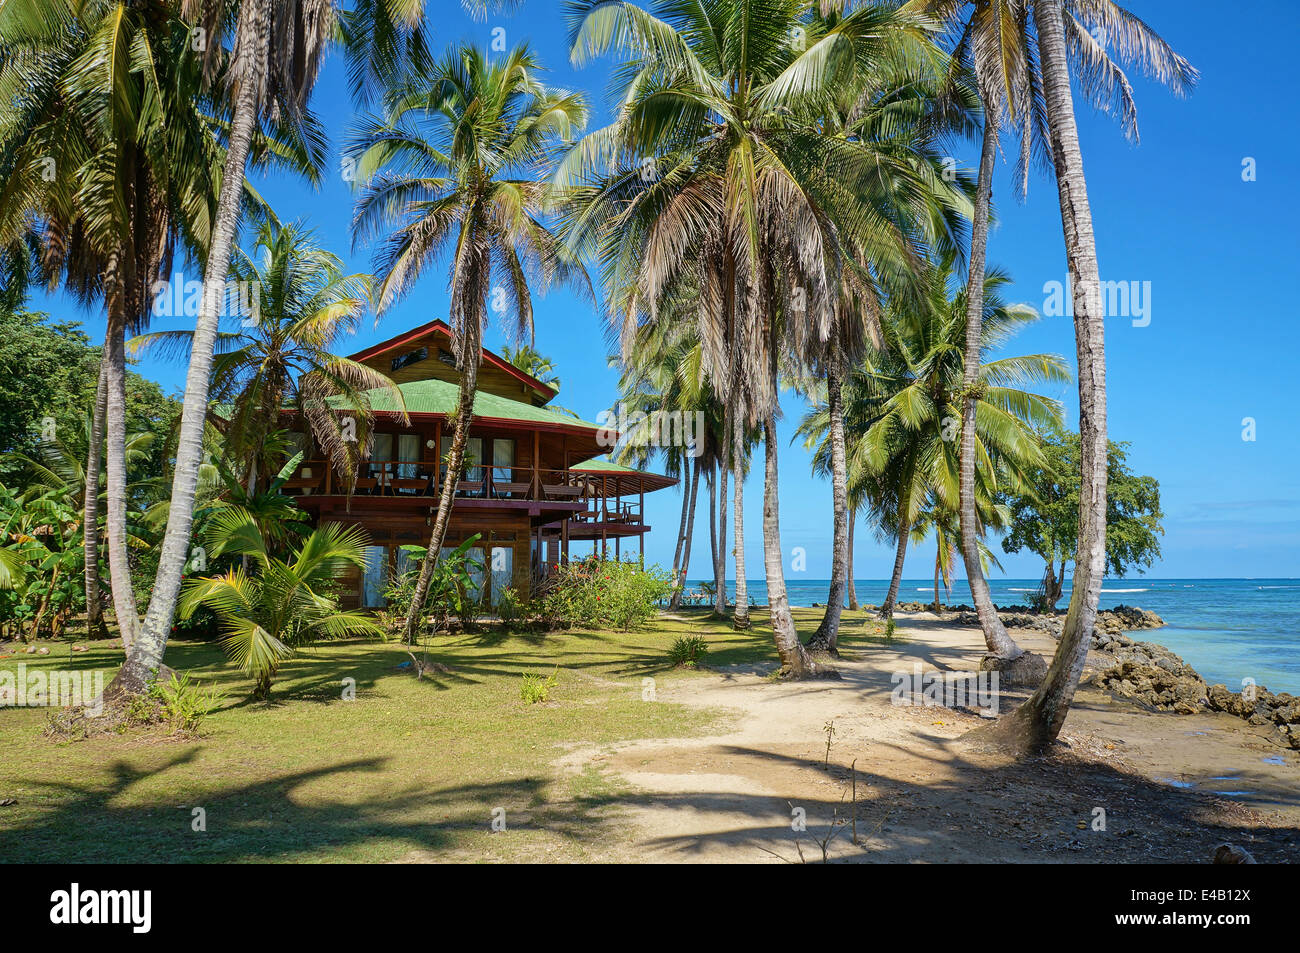 Tropical beach house with coconut palm trees on an island in the Caribbean - Stock Image